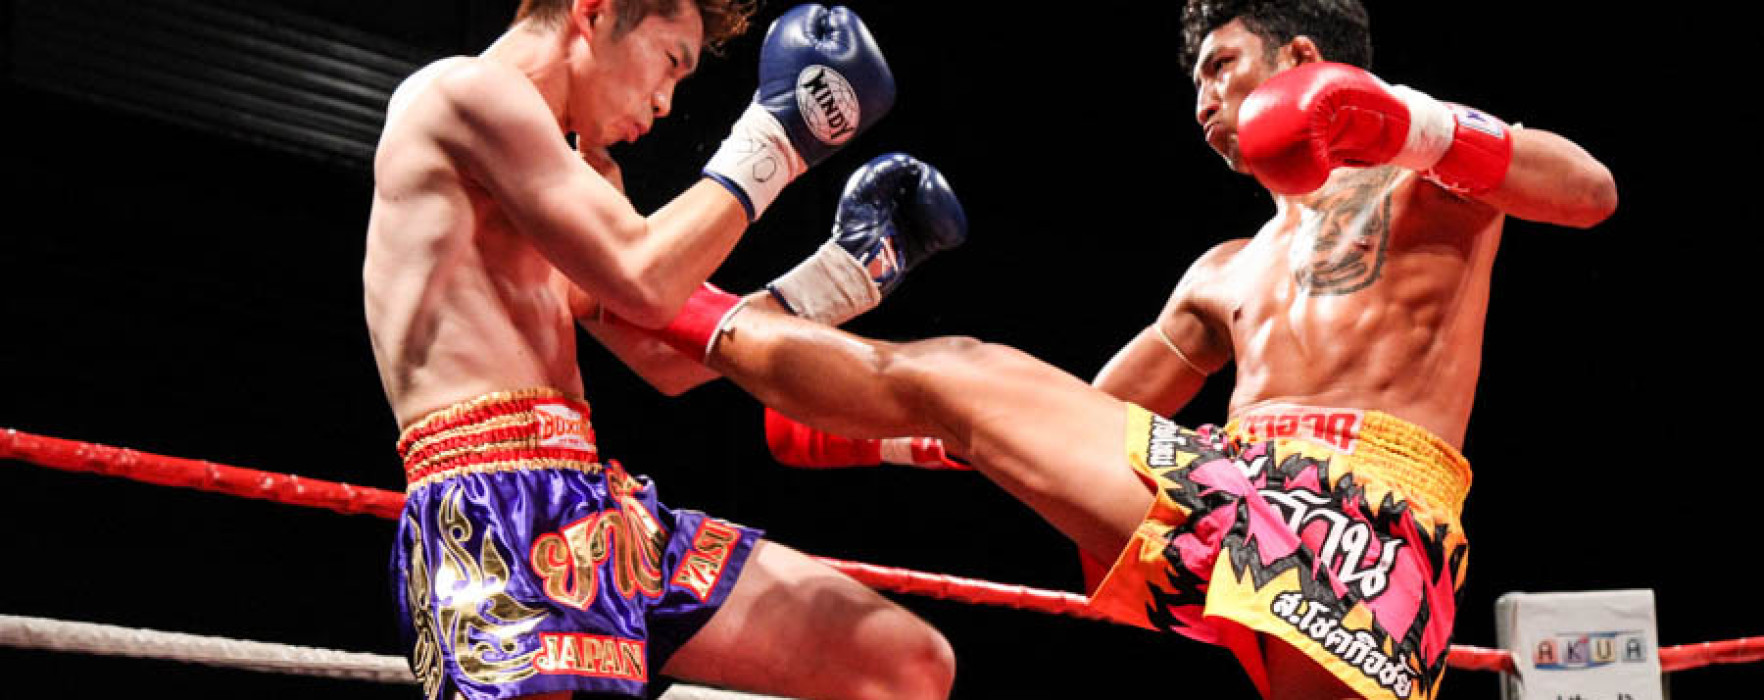 Video: Pakorn PK SaenchaiMuayThai vs Yasuyuki – Rebels – Japan – 26th October 2014